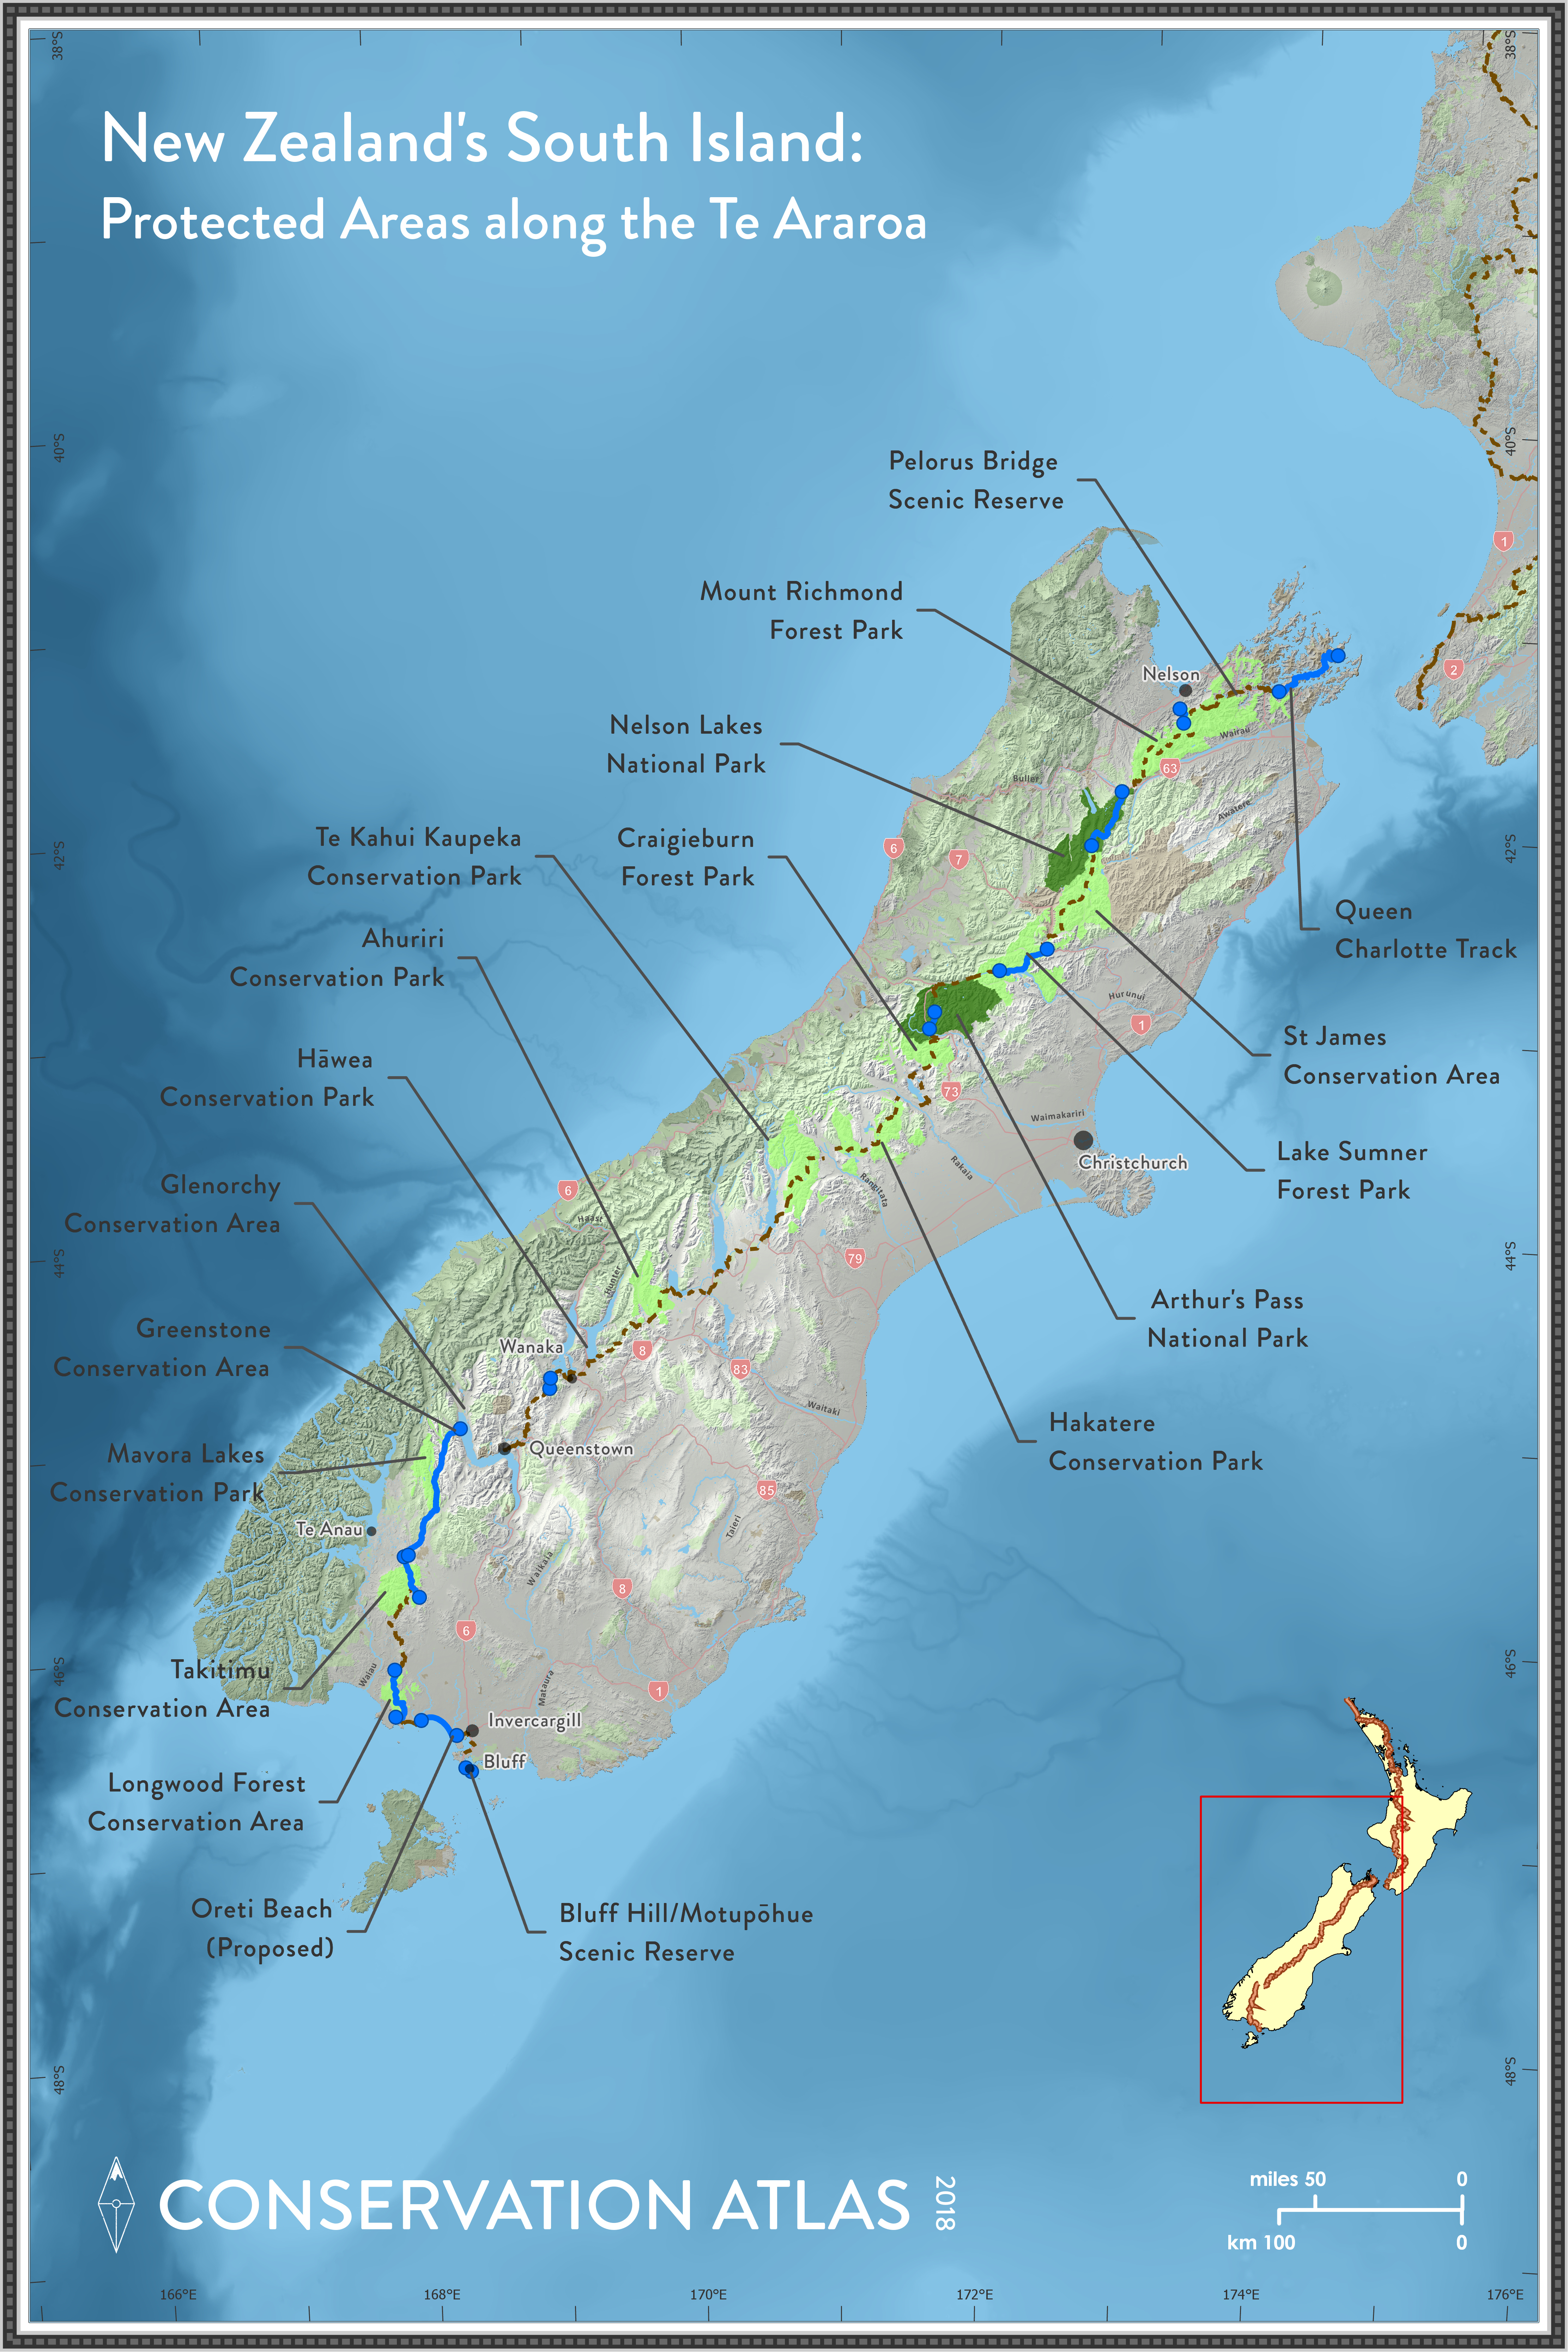 NEW ZEALAND'S TE ARAROA: Hiking to Connect Conservation ... on